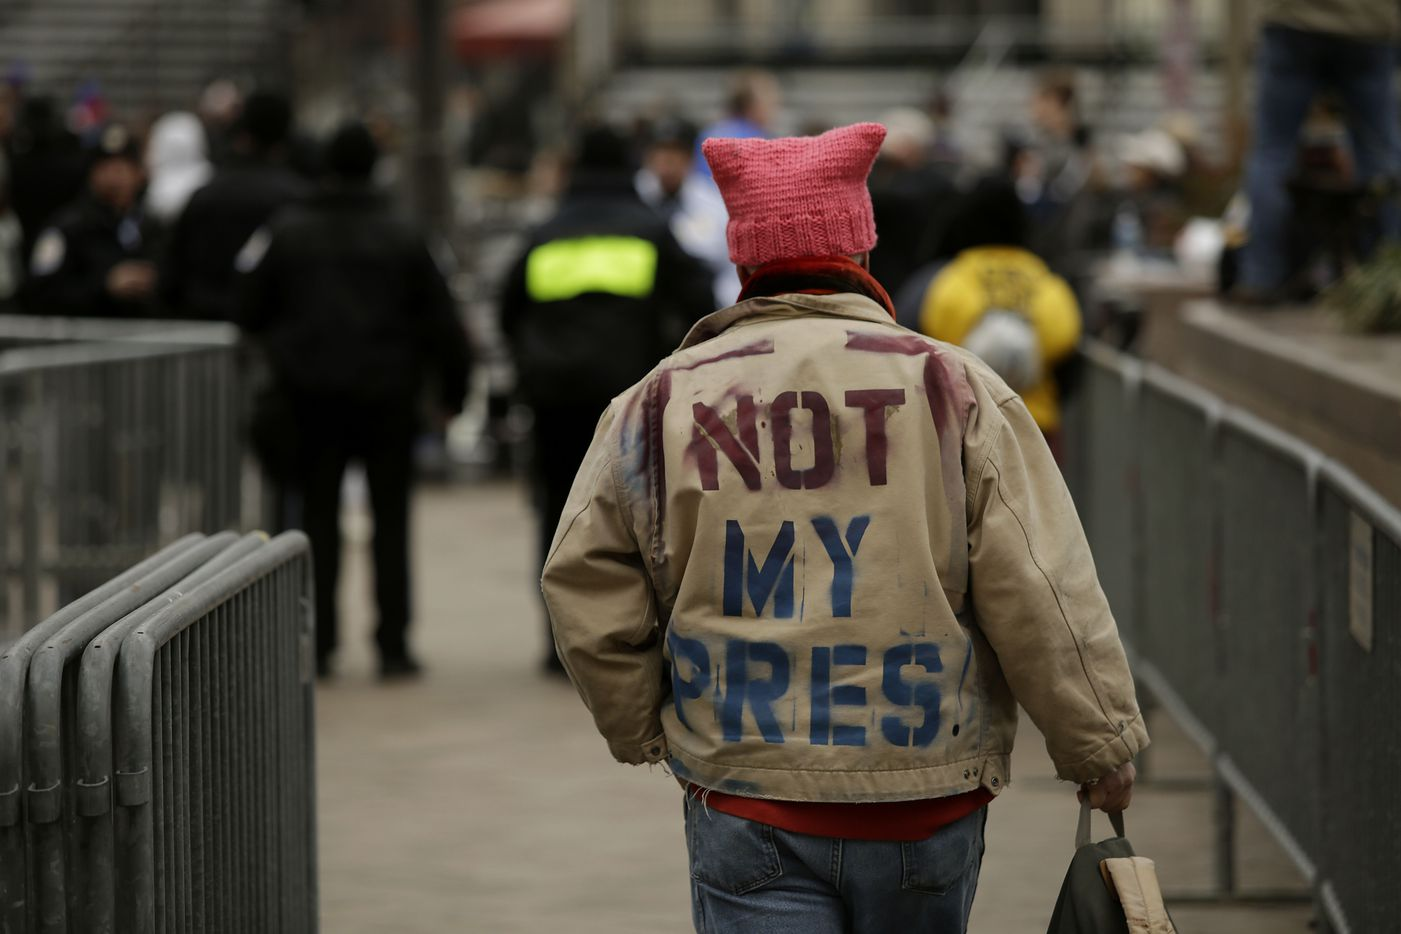 A man protests the Presidential Inauguration of Donald Trump on January 20, 2017 in Washington, DC.